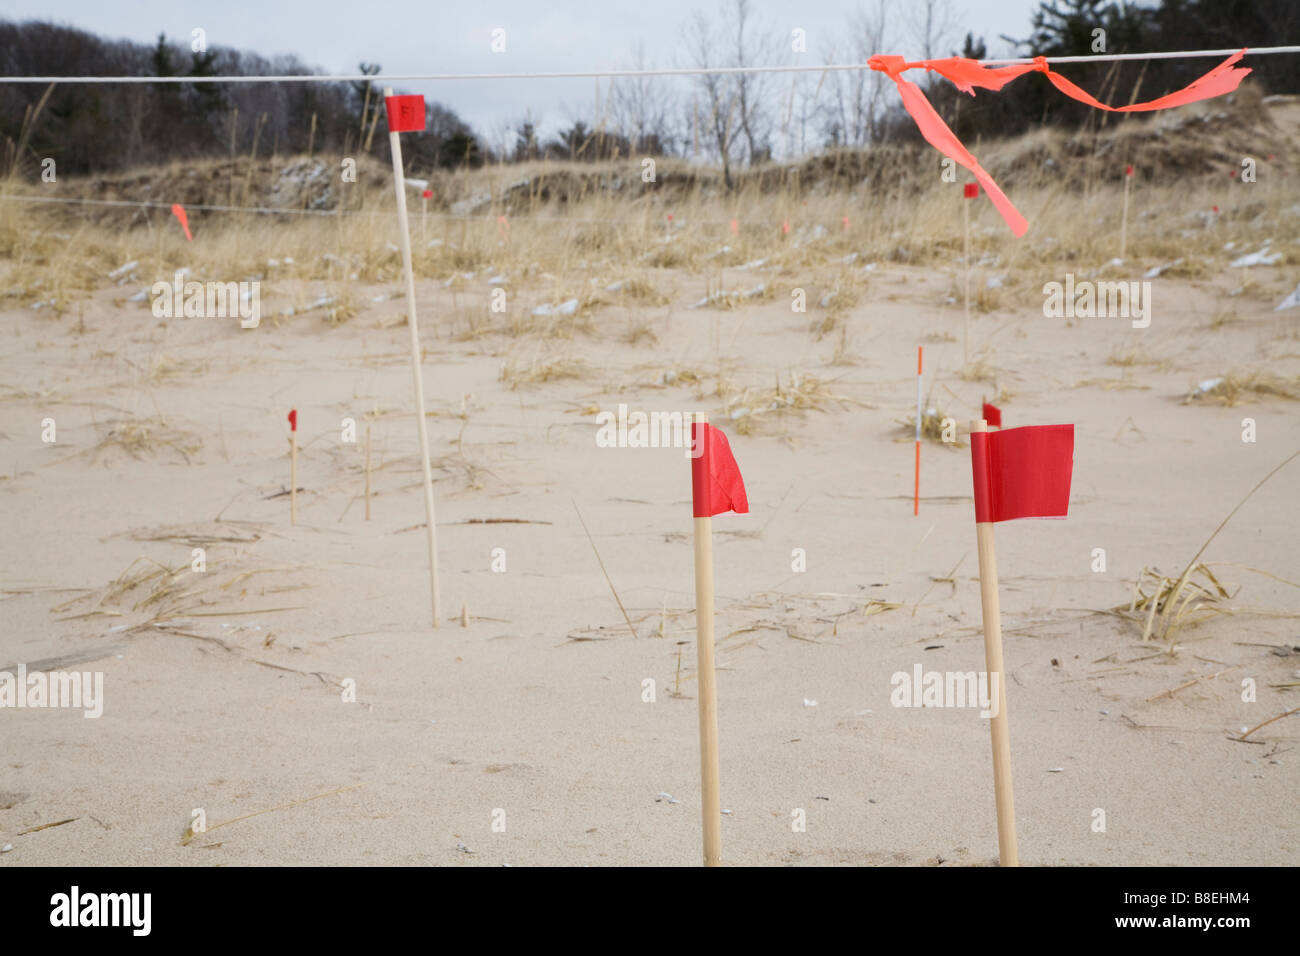 Researchers Study Movement of Sand Dunes - Stock Image